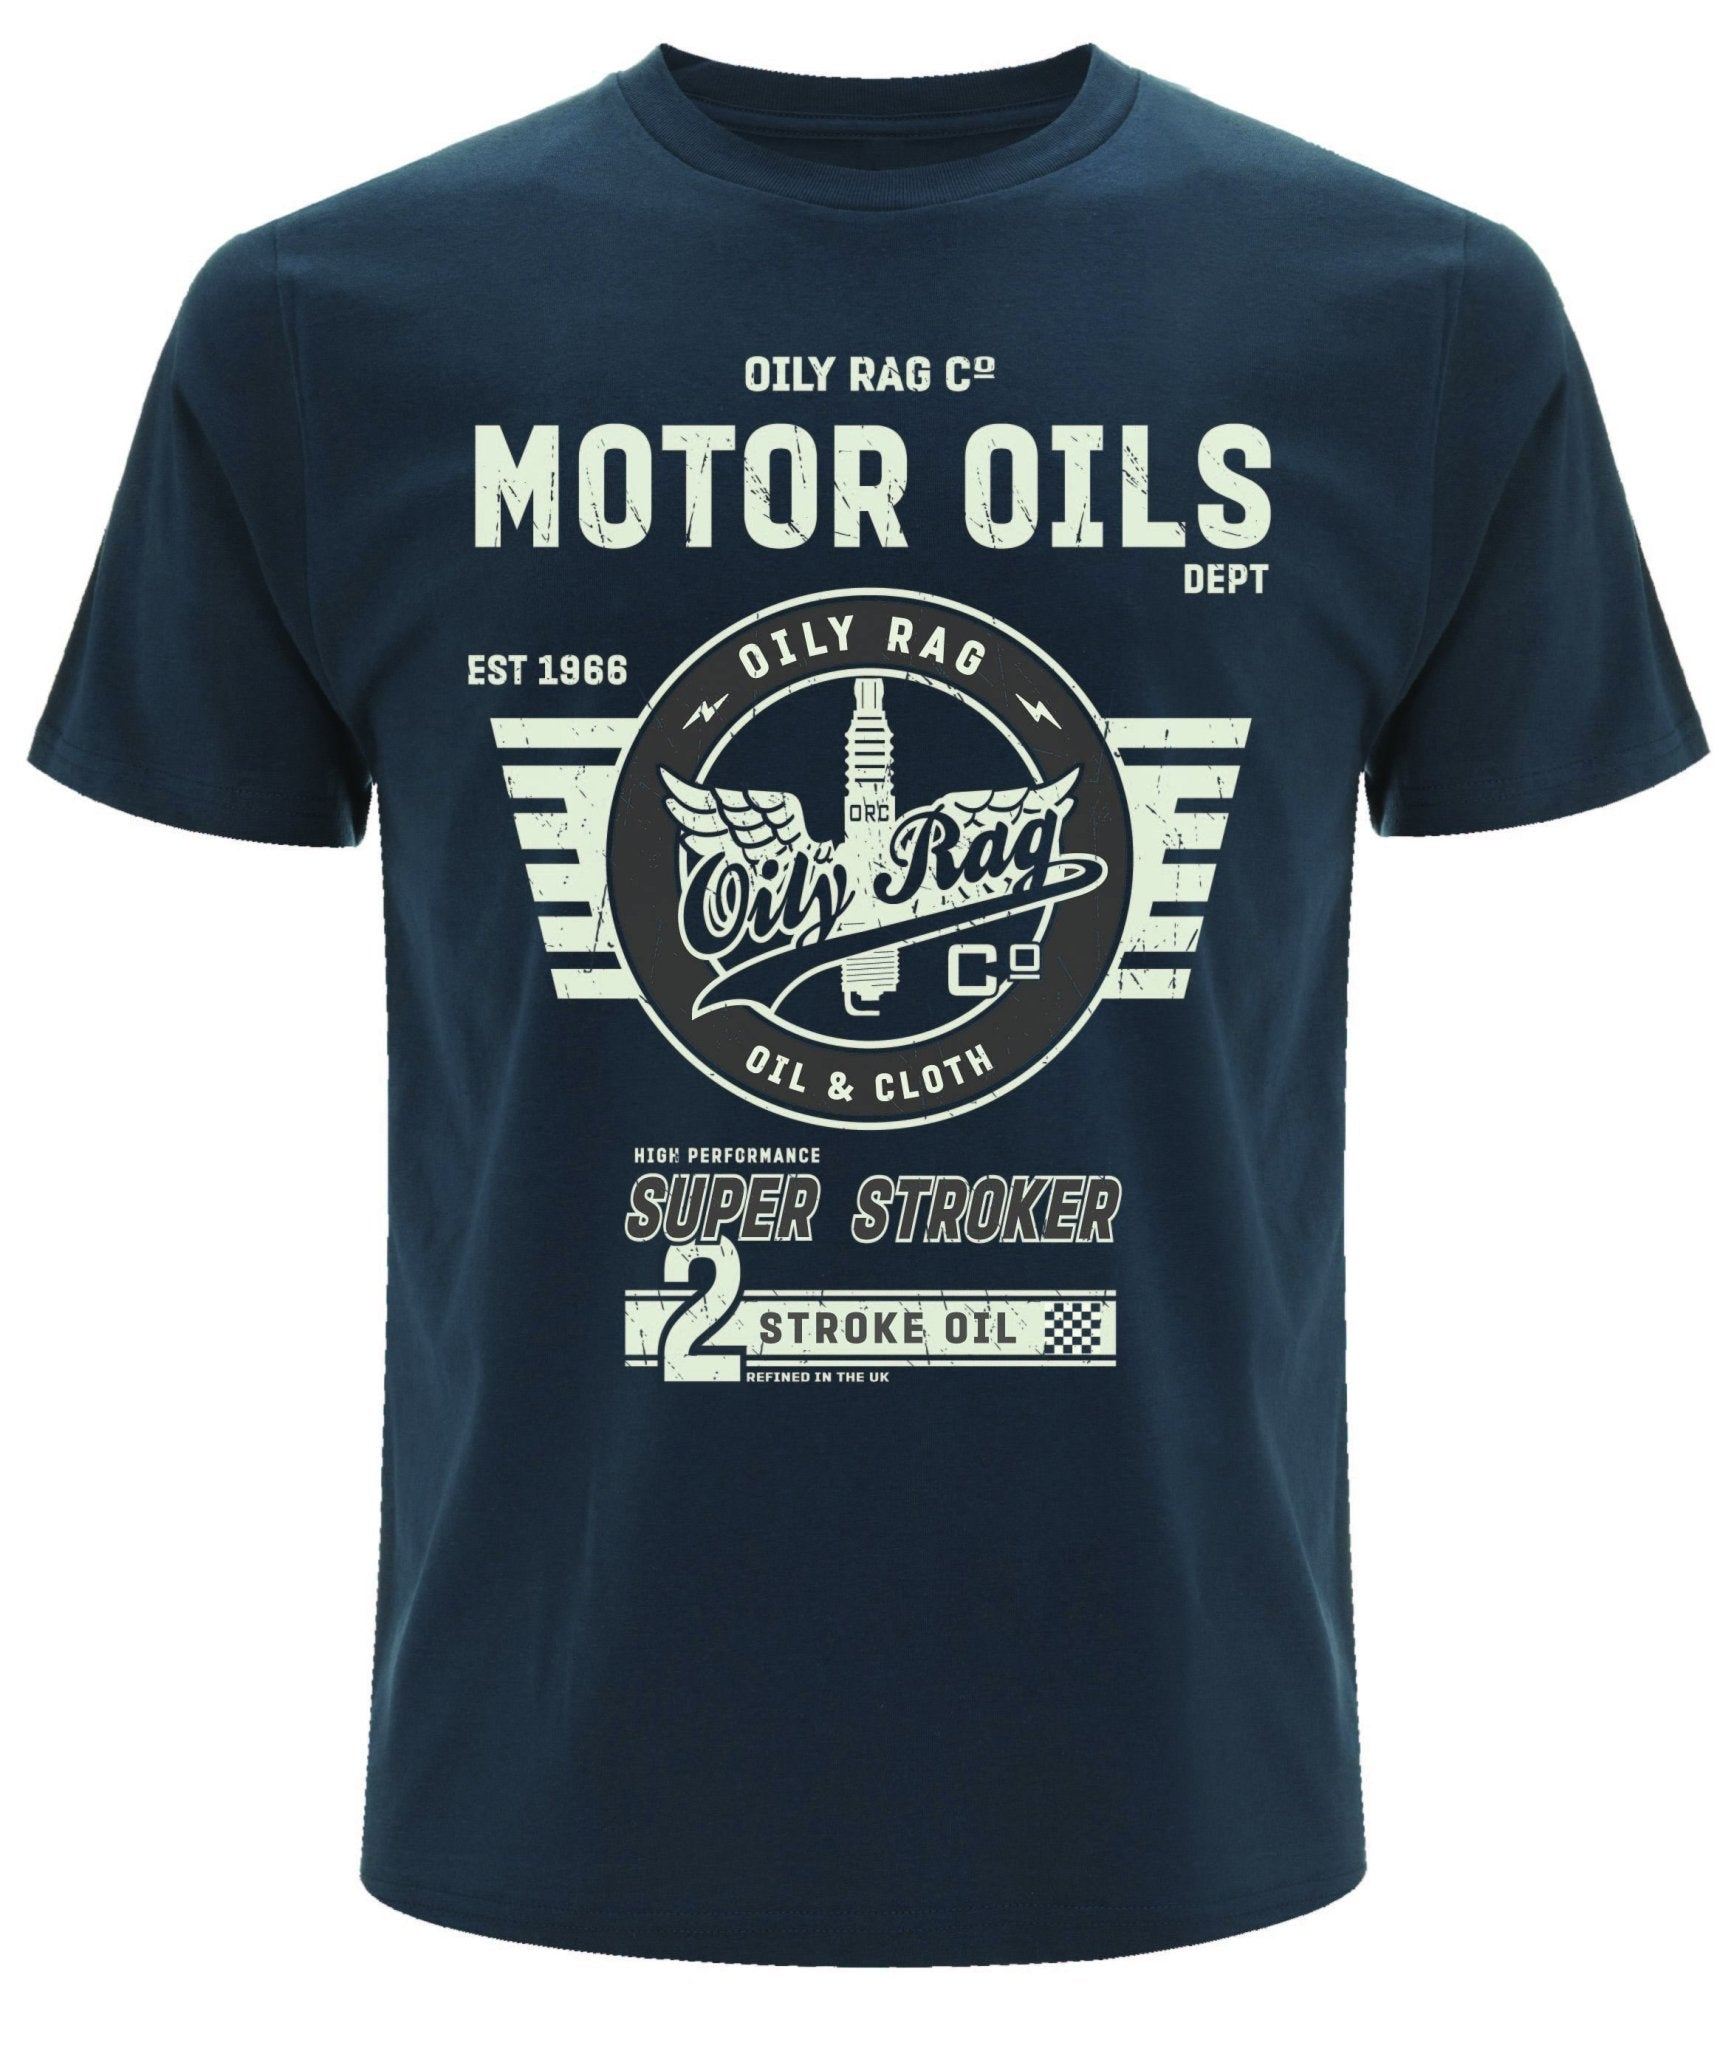 Oily Rag Clothing - Oily Rag Clothing Motor Oil T'Shirt - T-Shirts - Salt Flats Clothing